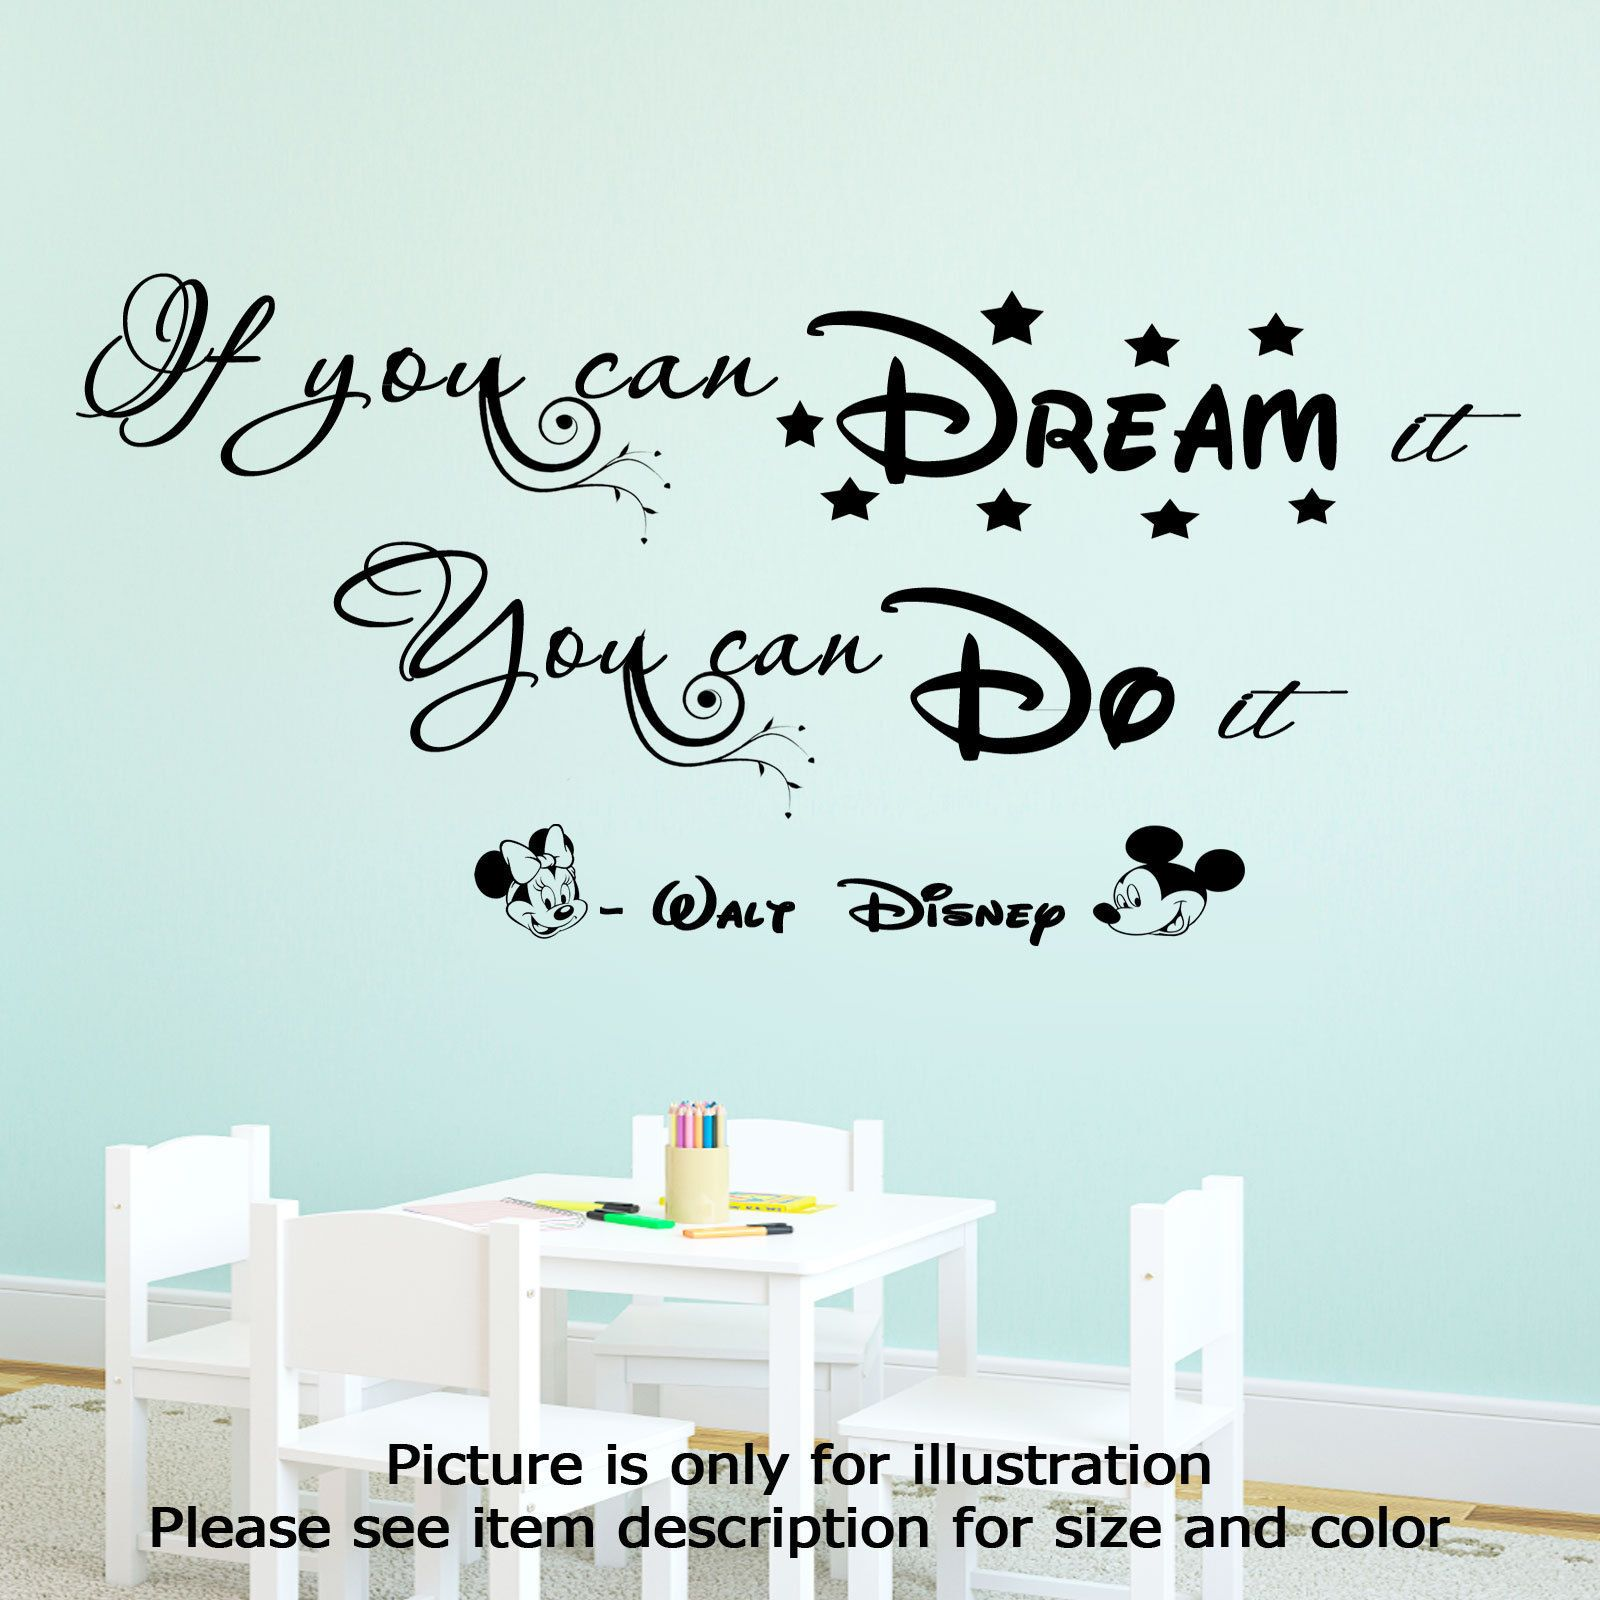 Disney Mickey Mouse IF YOU CAN DREAM IT vinyl wall art decal sticker quote 19i